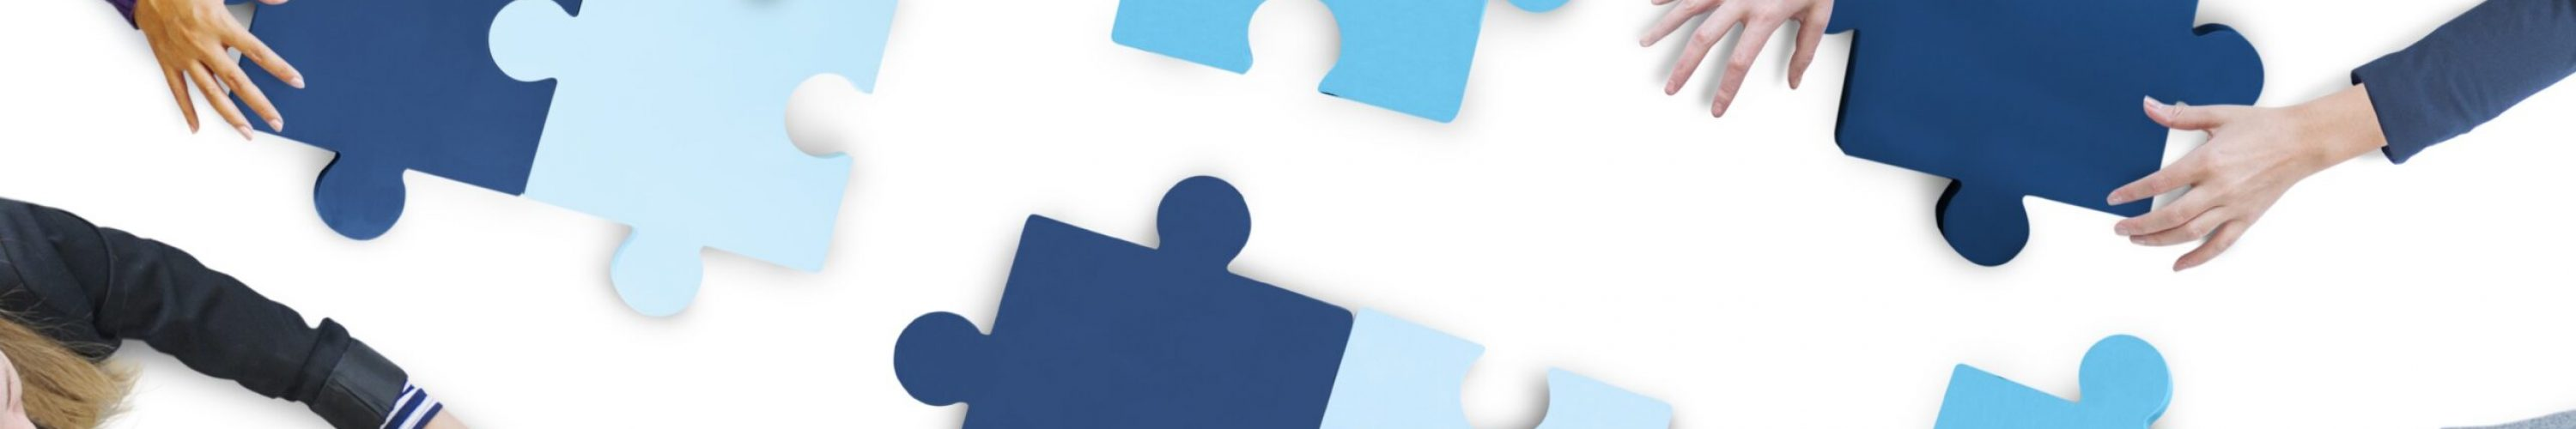 Aerial,View,Of,Business,People,Piecing,Puzzle,Pieces